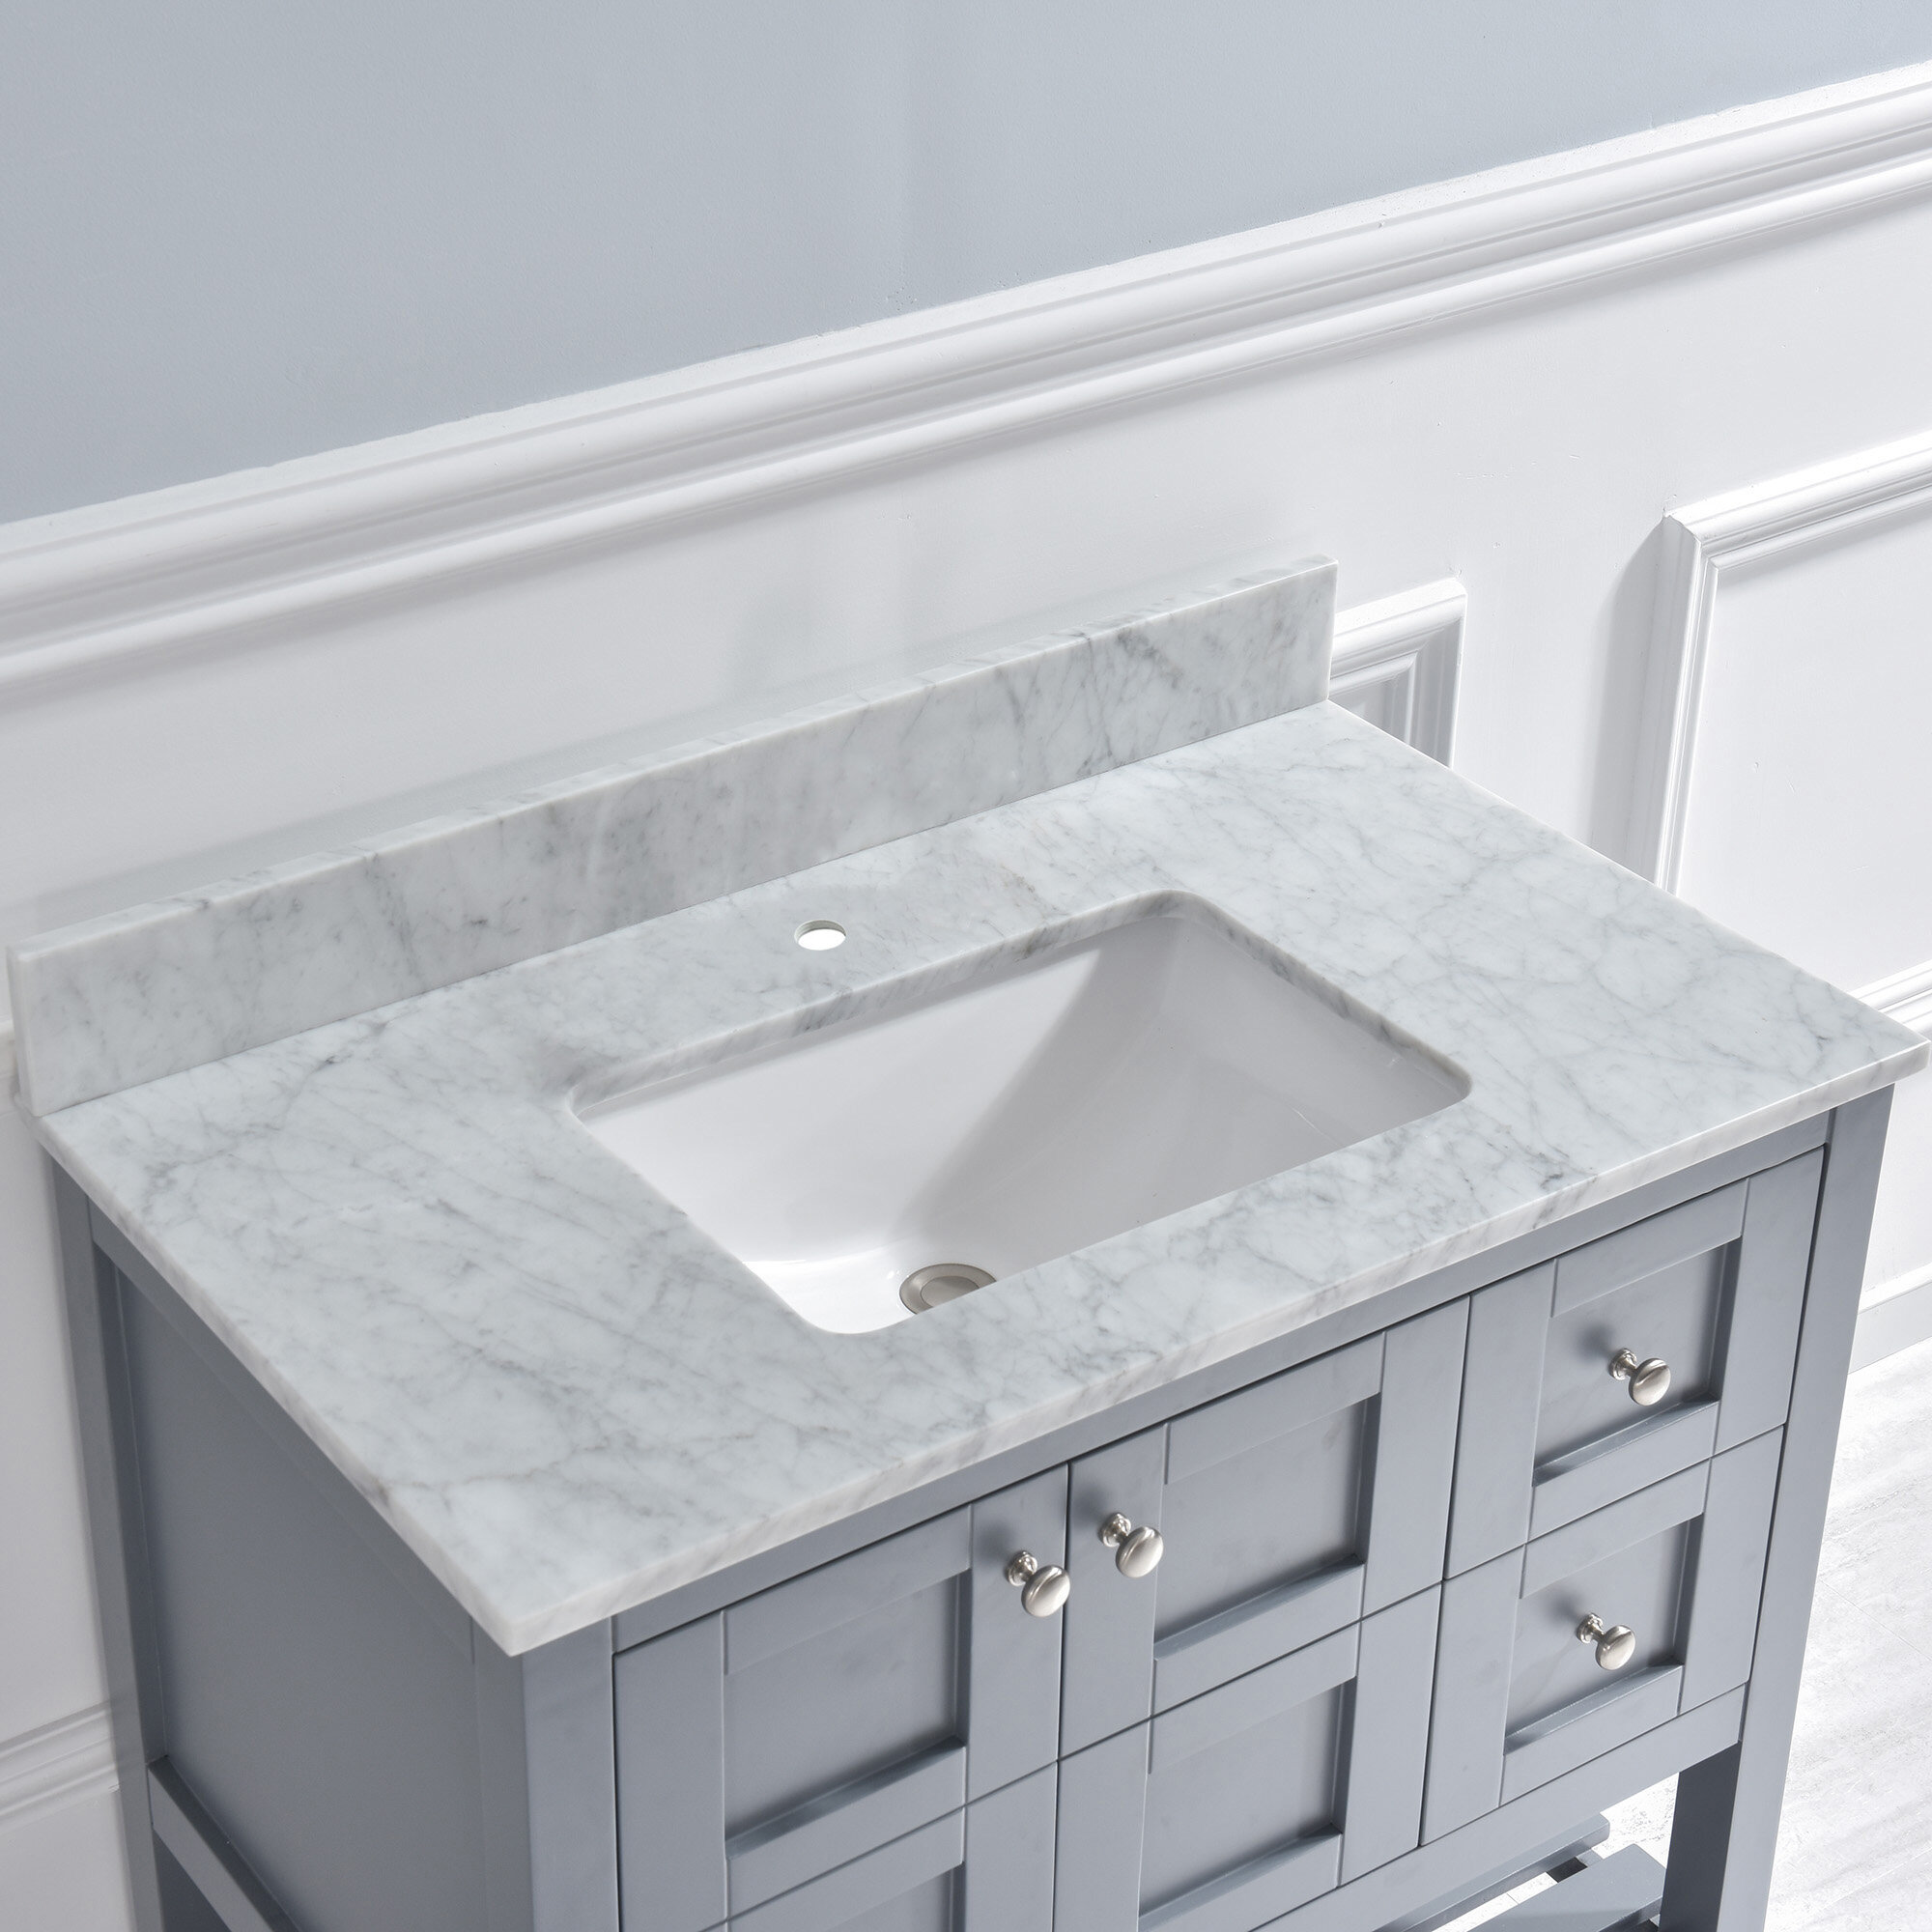 Woodbridge 43 Single Bathroom Vanity Top In Carrara Marble With Sink Reviews Wayfair